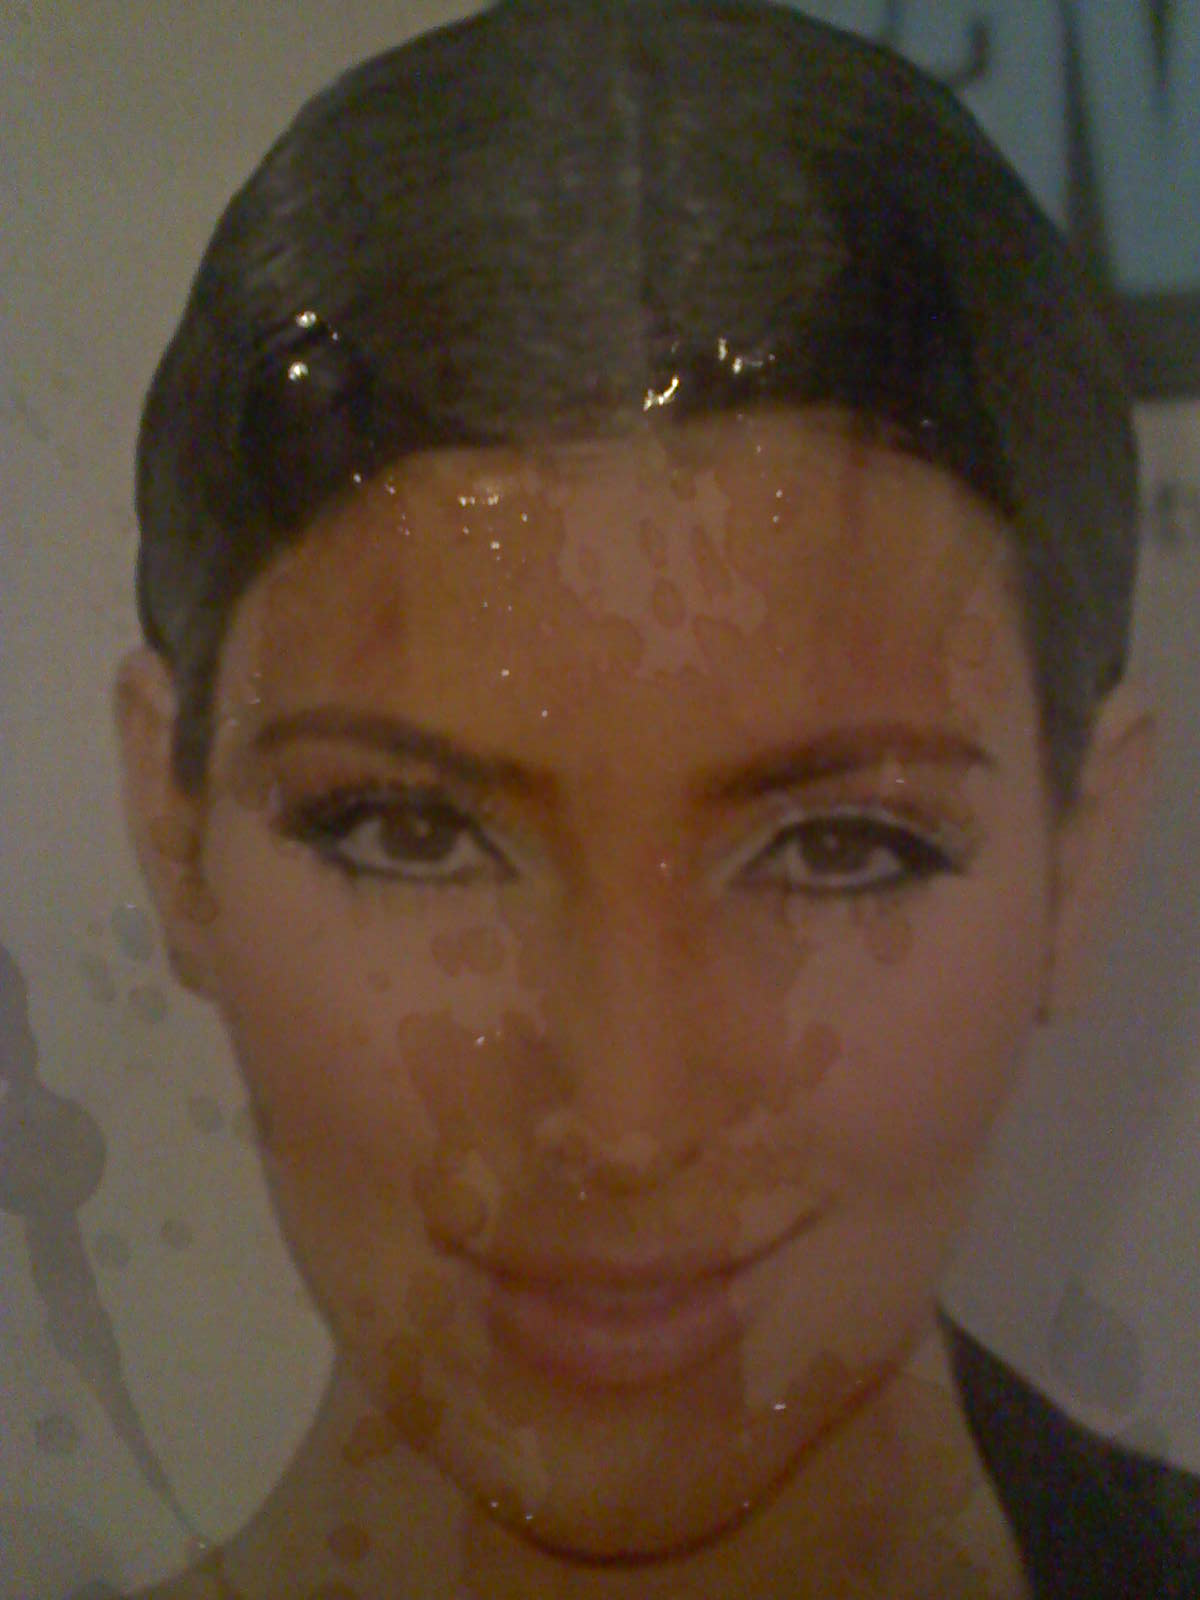 Kim Kardashian After face.jpg